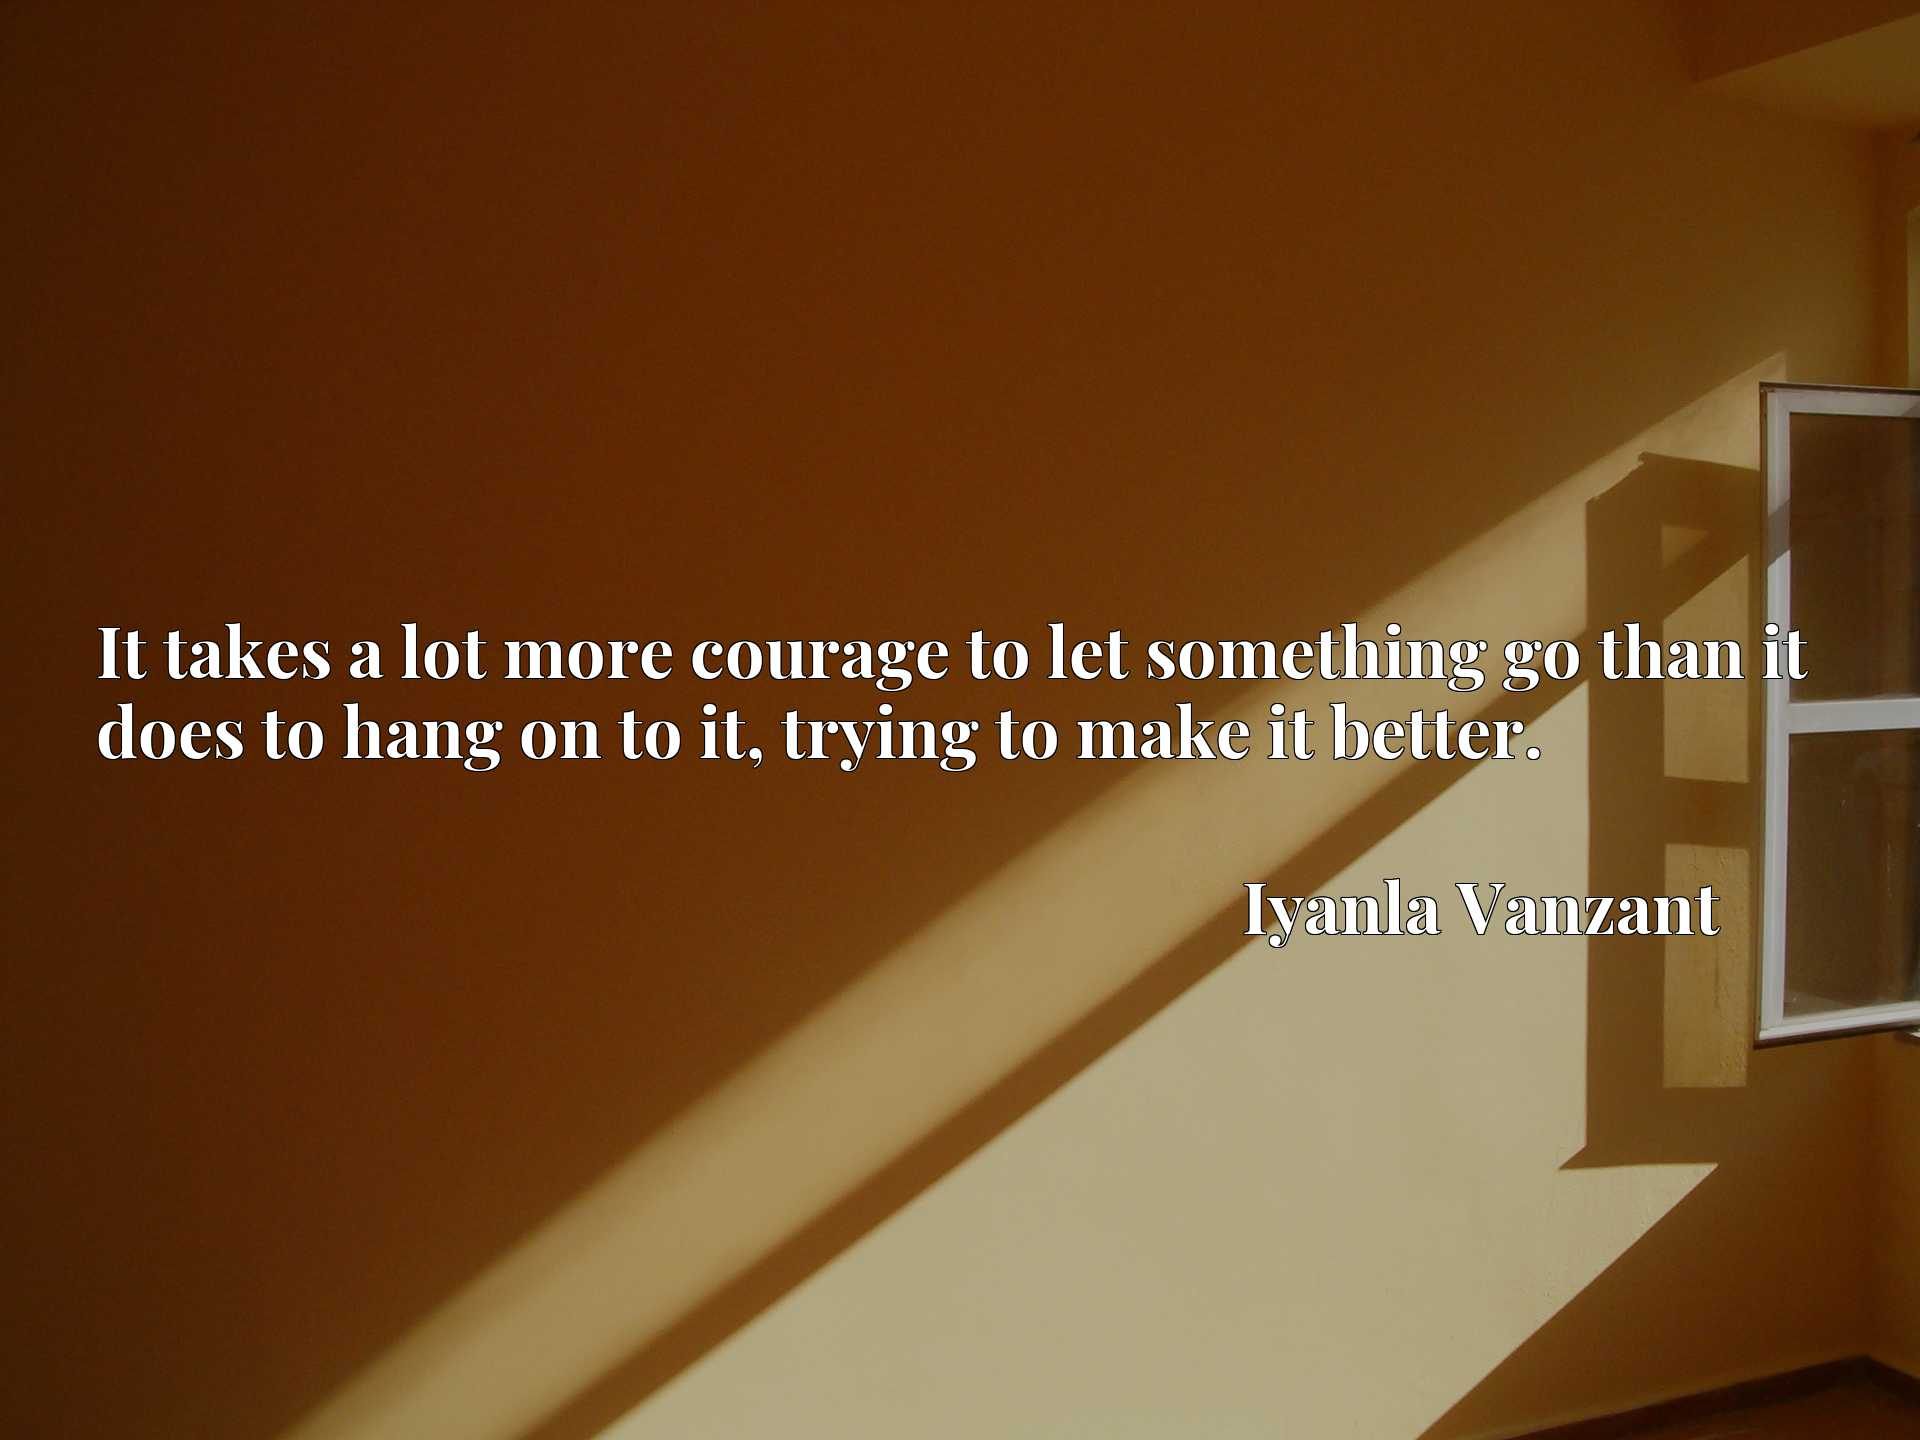 Quote Picture :It takes a lot more courage to let something go than it does to hang on to it, trying to make it better.